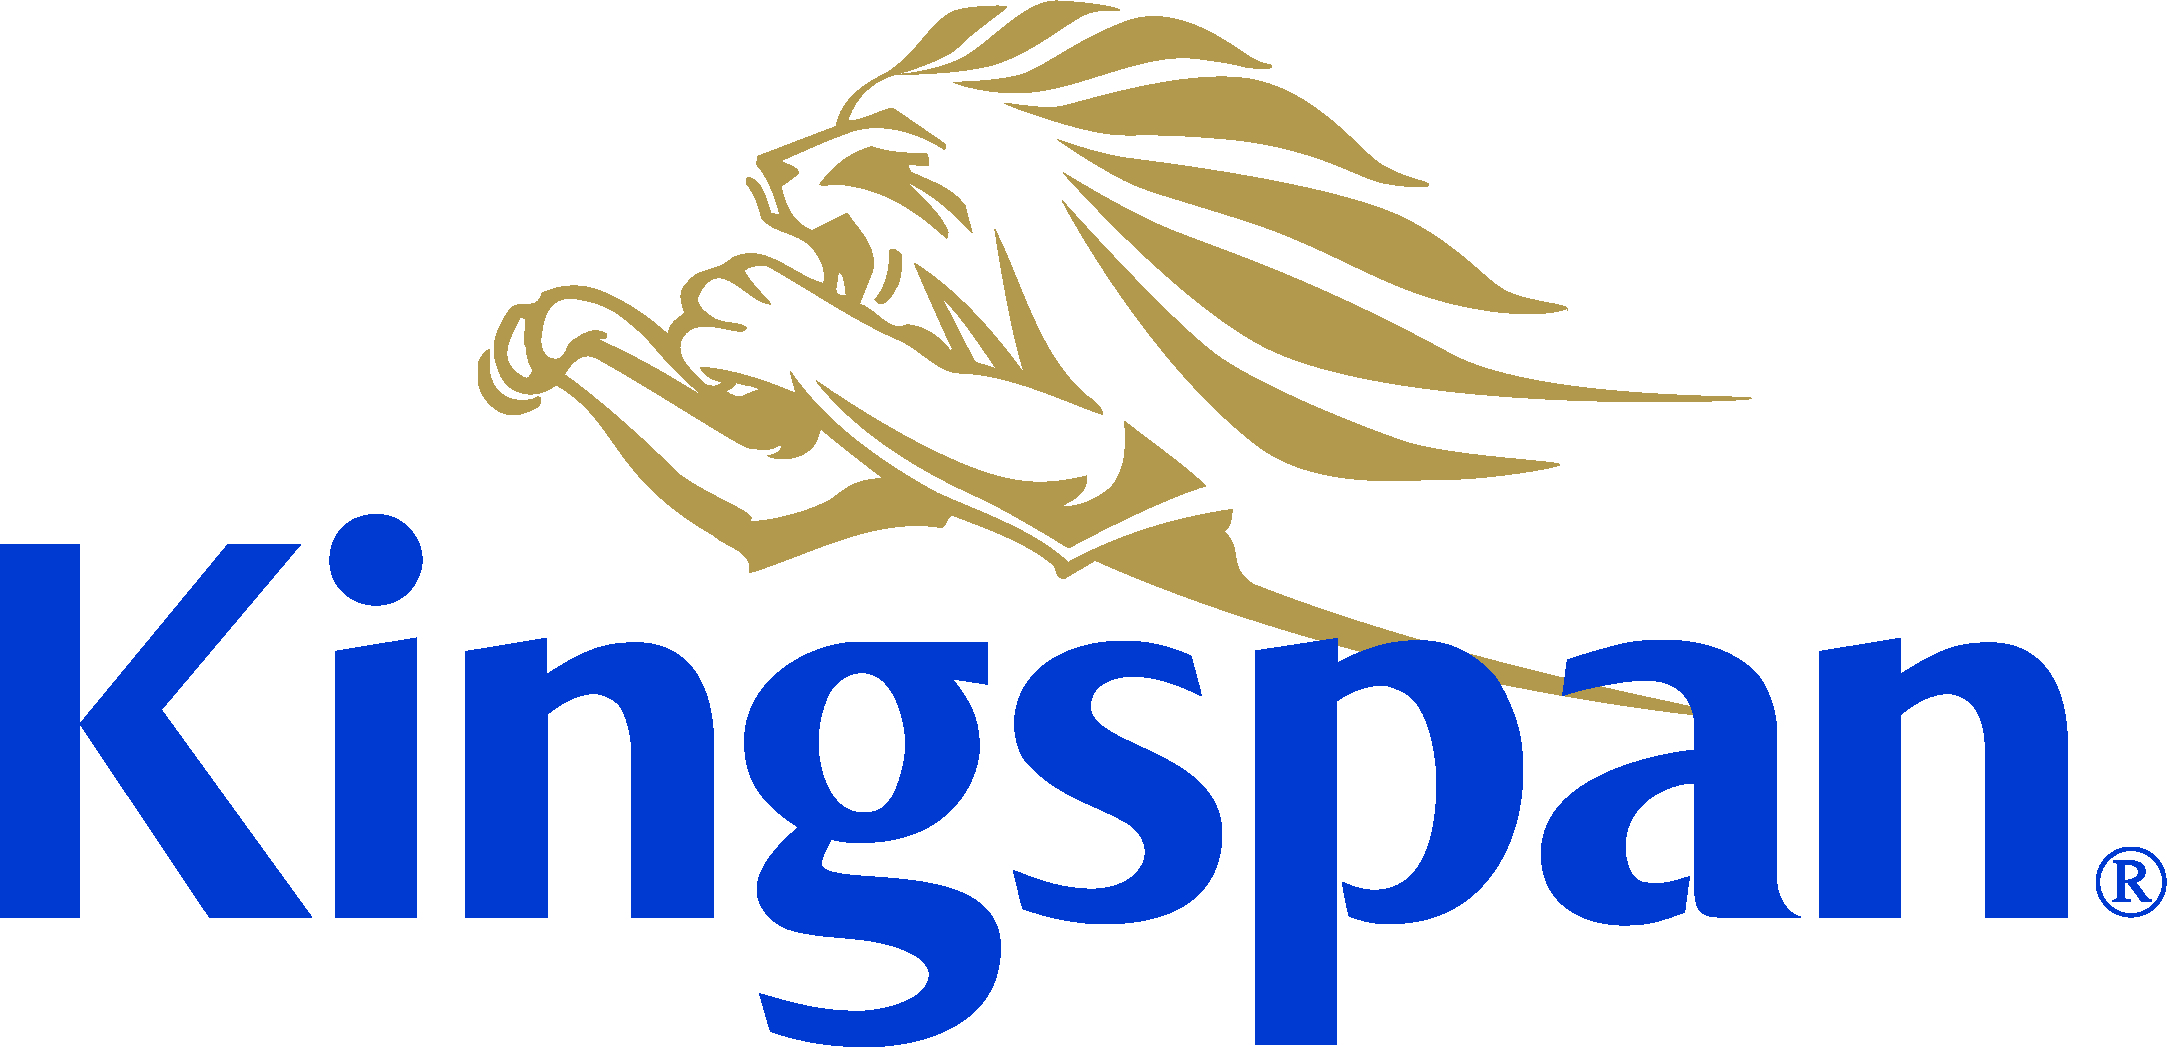 Kingspan - Kingspan Group is the global leader in high-performance insulation and building technologies. Through constant innovation, we improve building performance with products, services and solutions that contribute to a more sustainable, energy-efficient future for our customers and the environment.